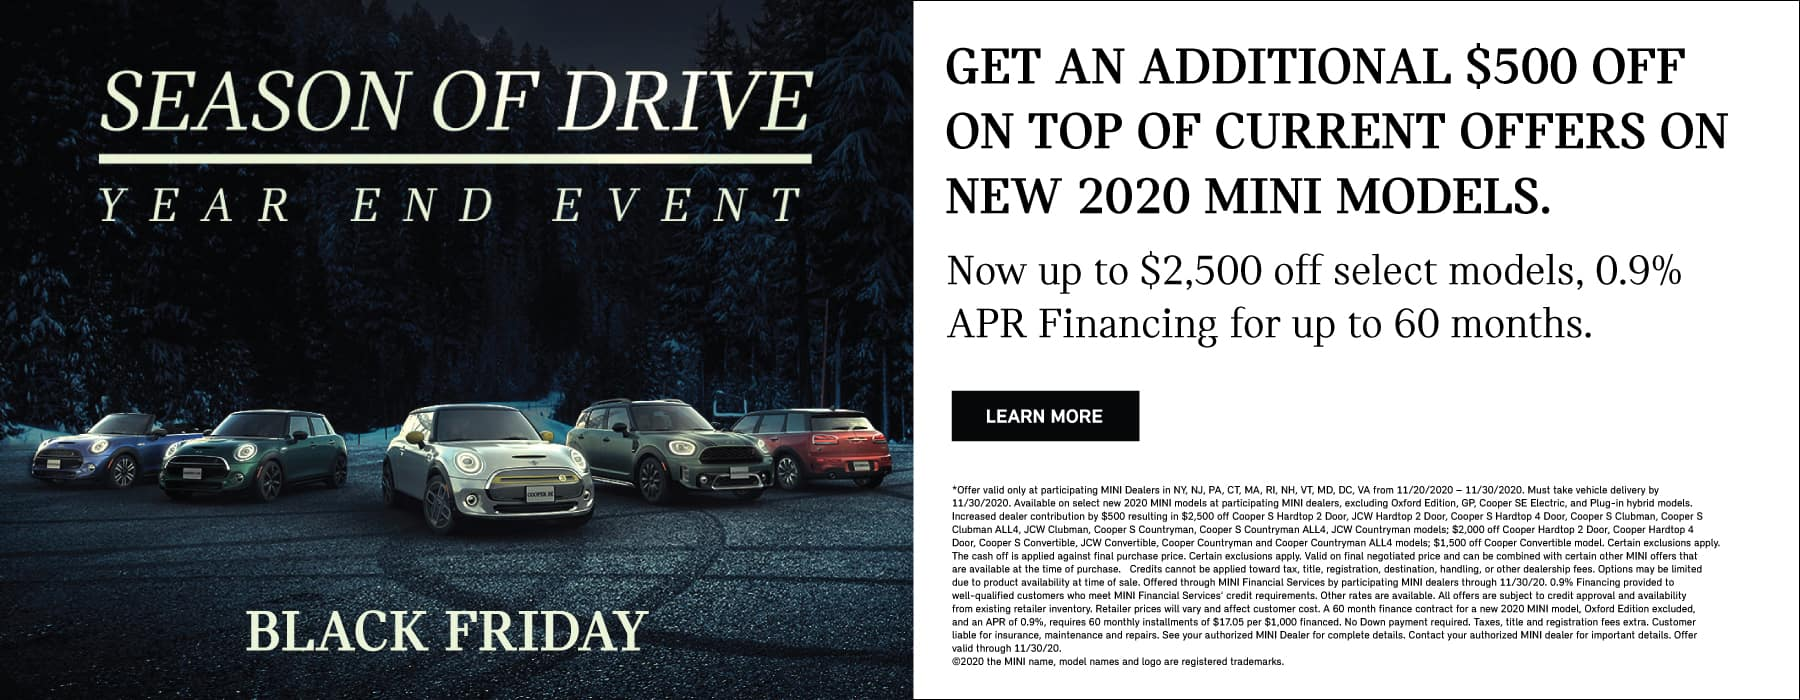 GET AN ADDITIONAL $500 OFF CURRENT OFFERS ON NEW MODELS. Now up to $2500 off select MINI models for up to 60 months.